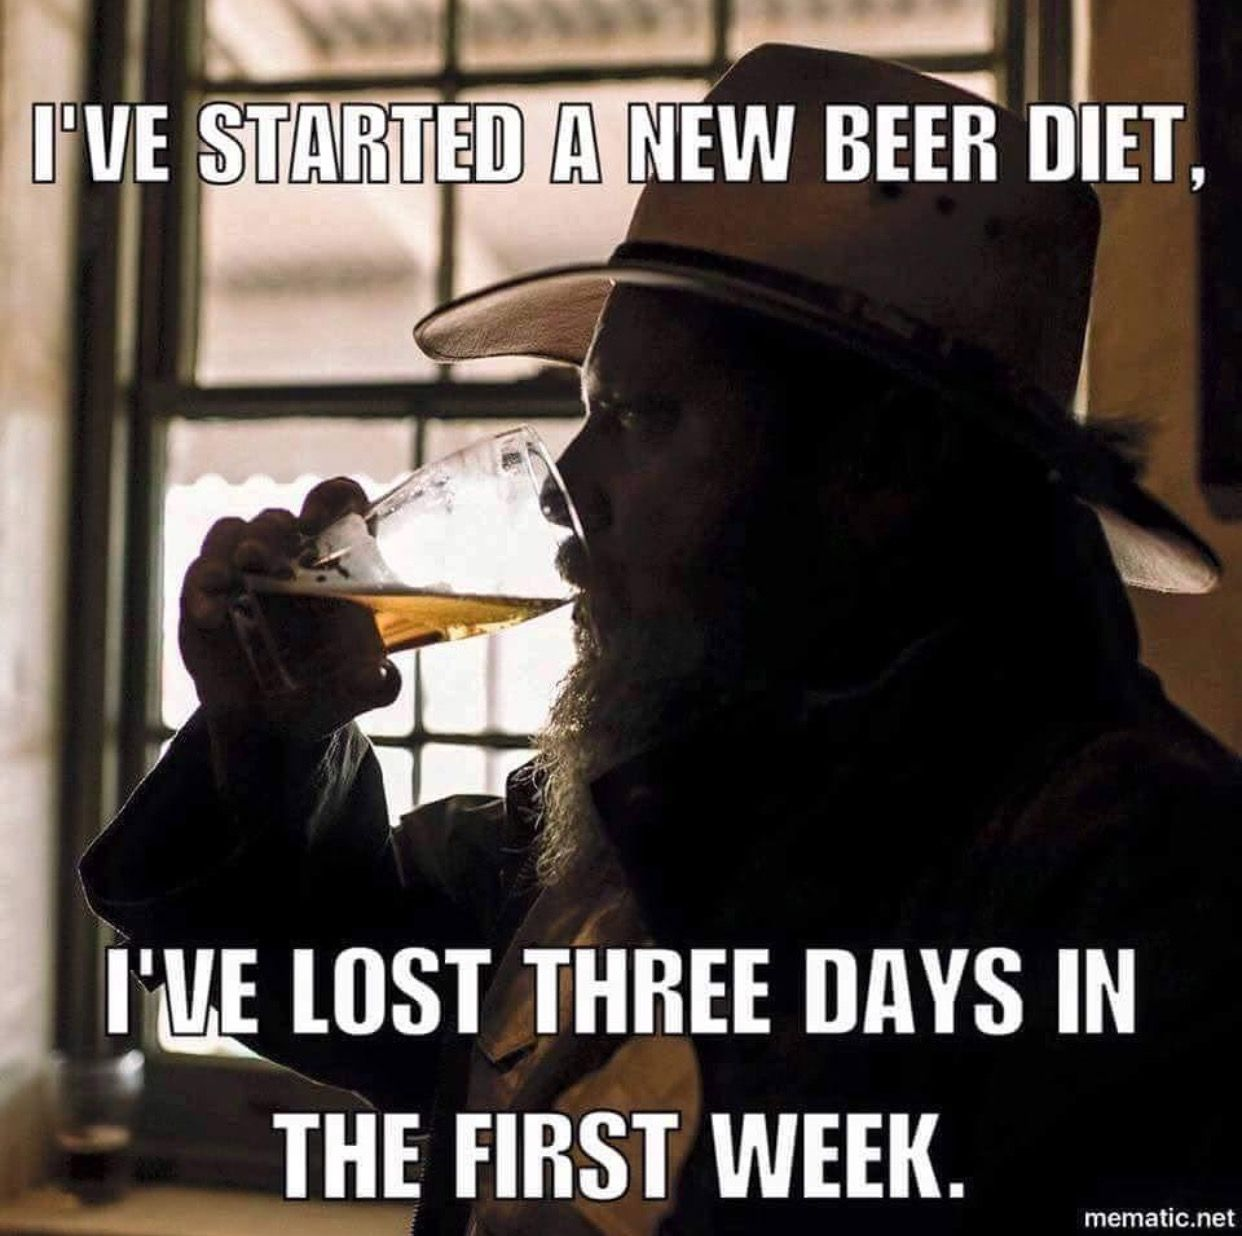 My idea of a diet...